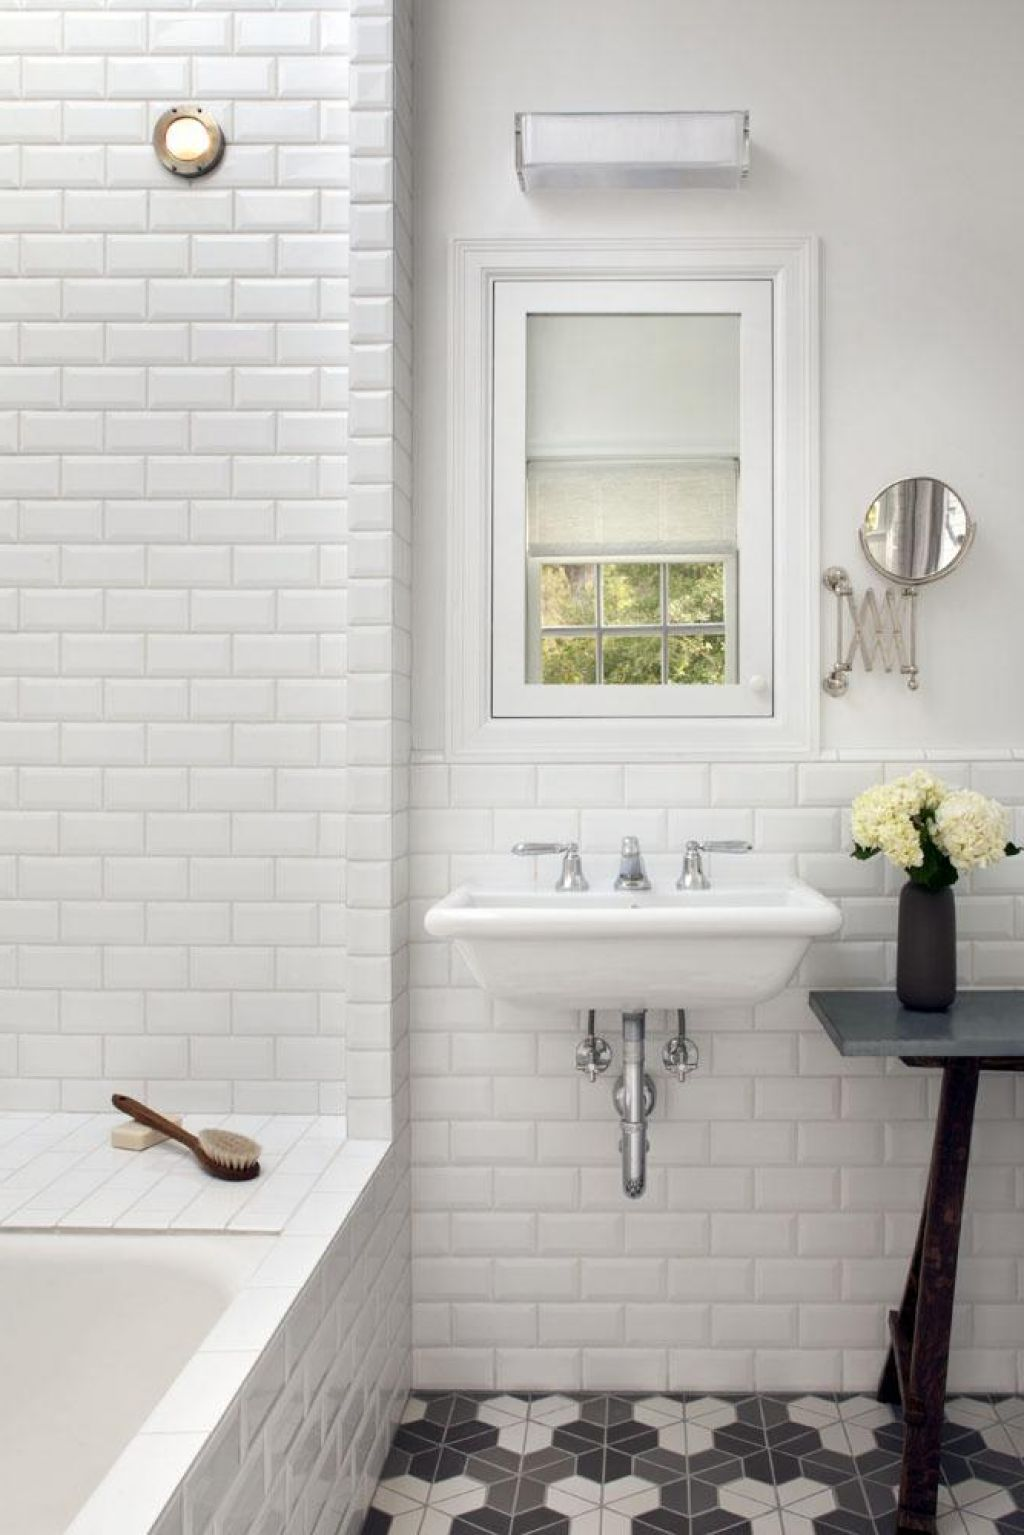 Subway Tile Bathroom Ideas Floor City Wide Kitchen And Bath Wash Room Pinterest Subway